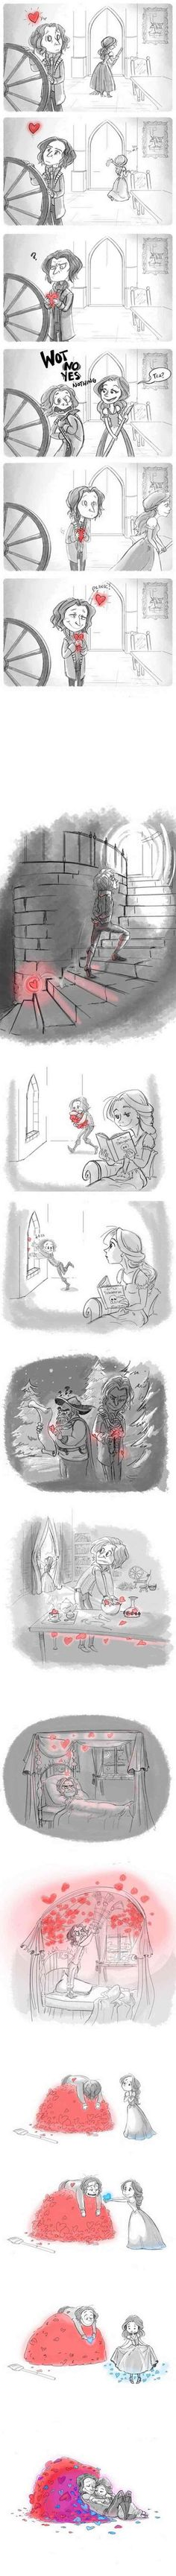 Rumplestiltskin falls in love... This is a lovely comic about falling in love…